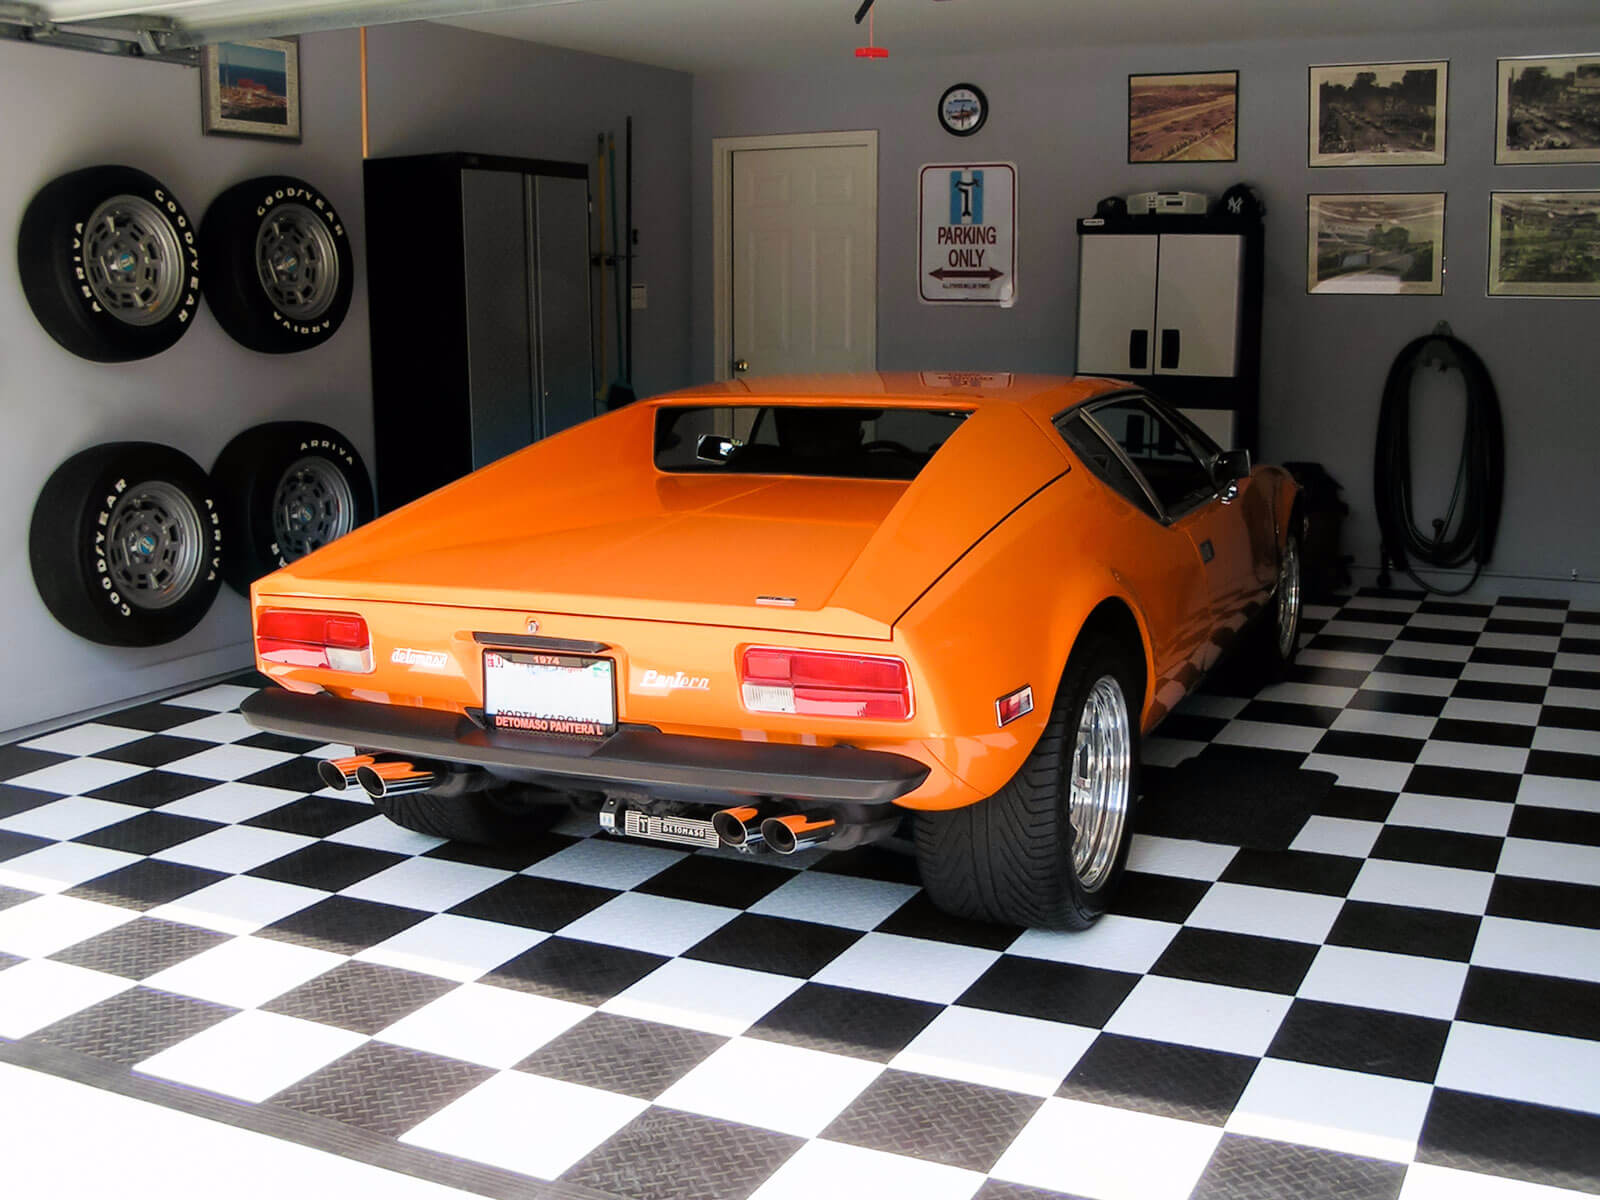 Checkered garage with DeTomaso Pantera